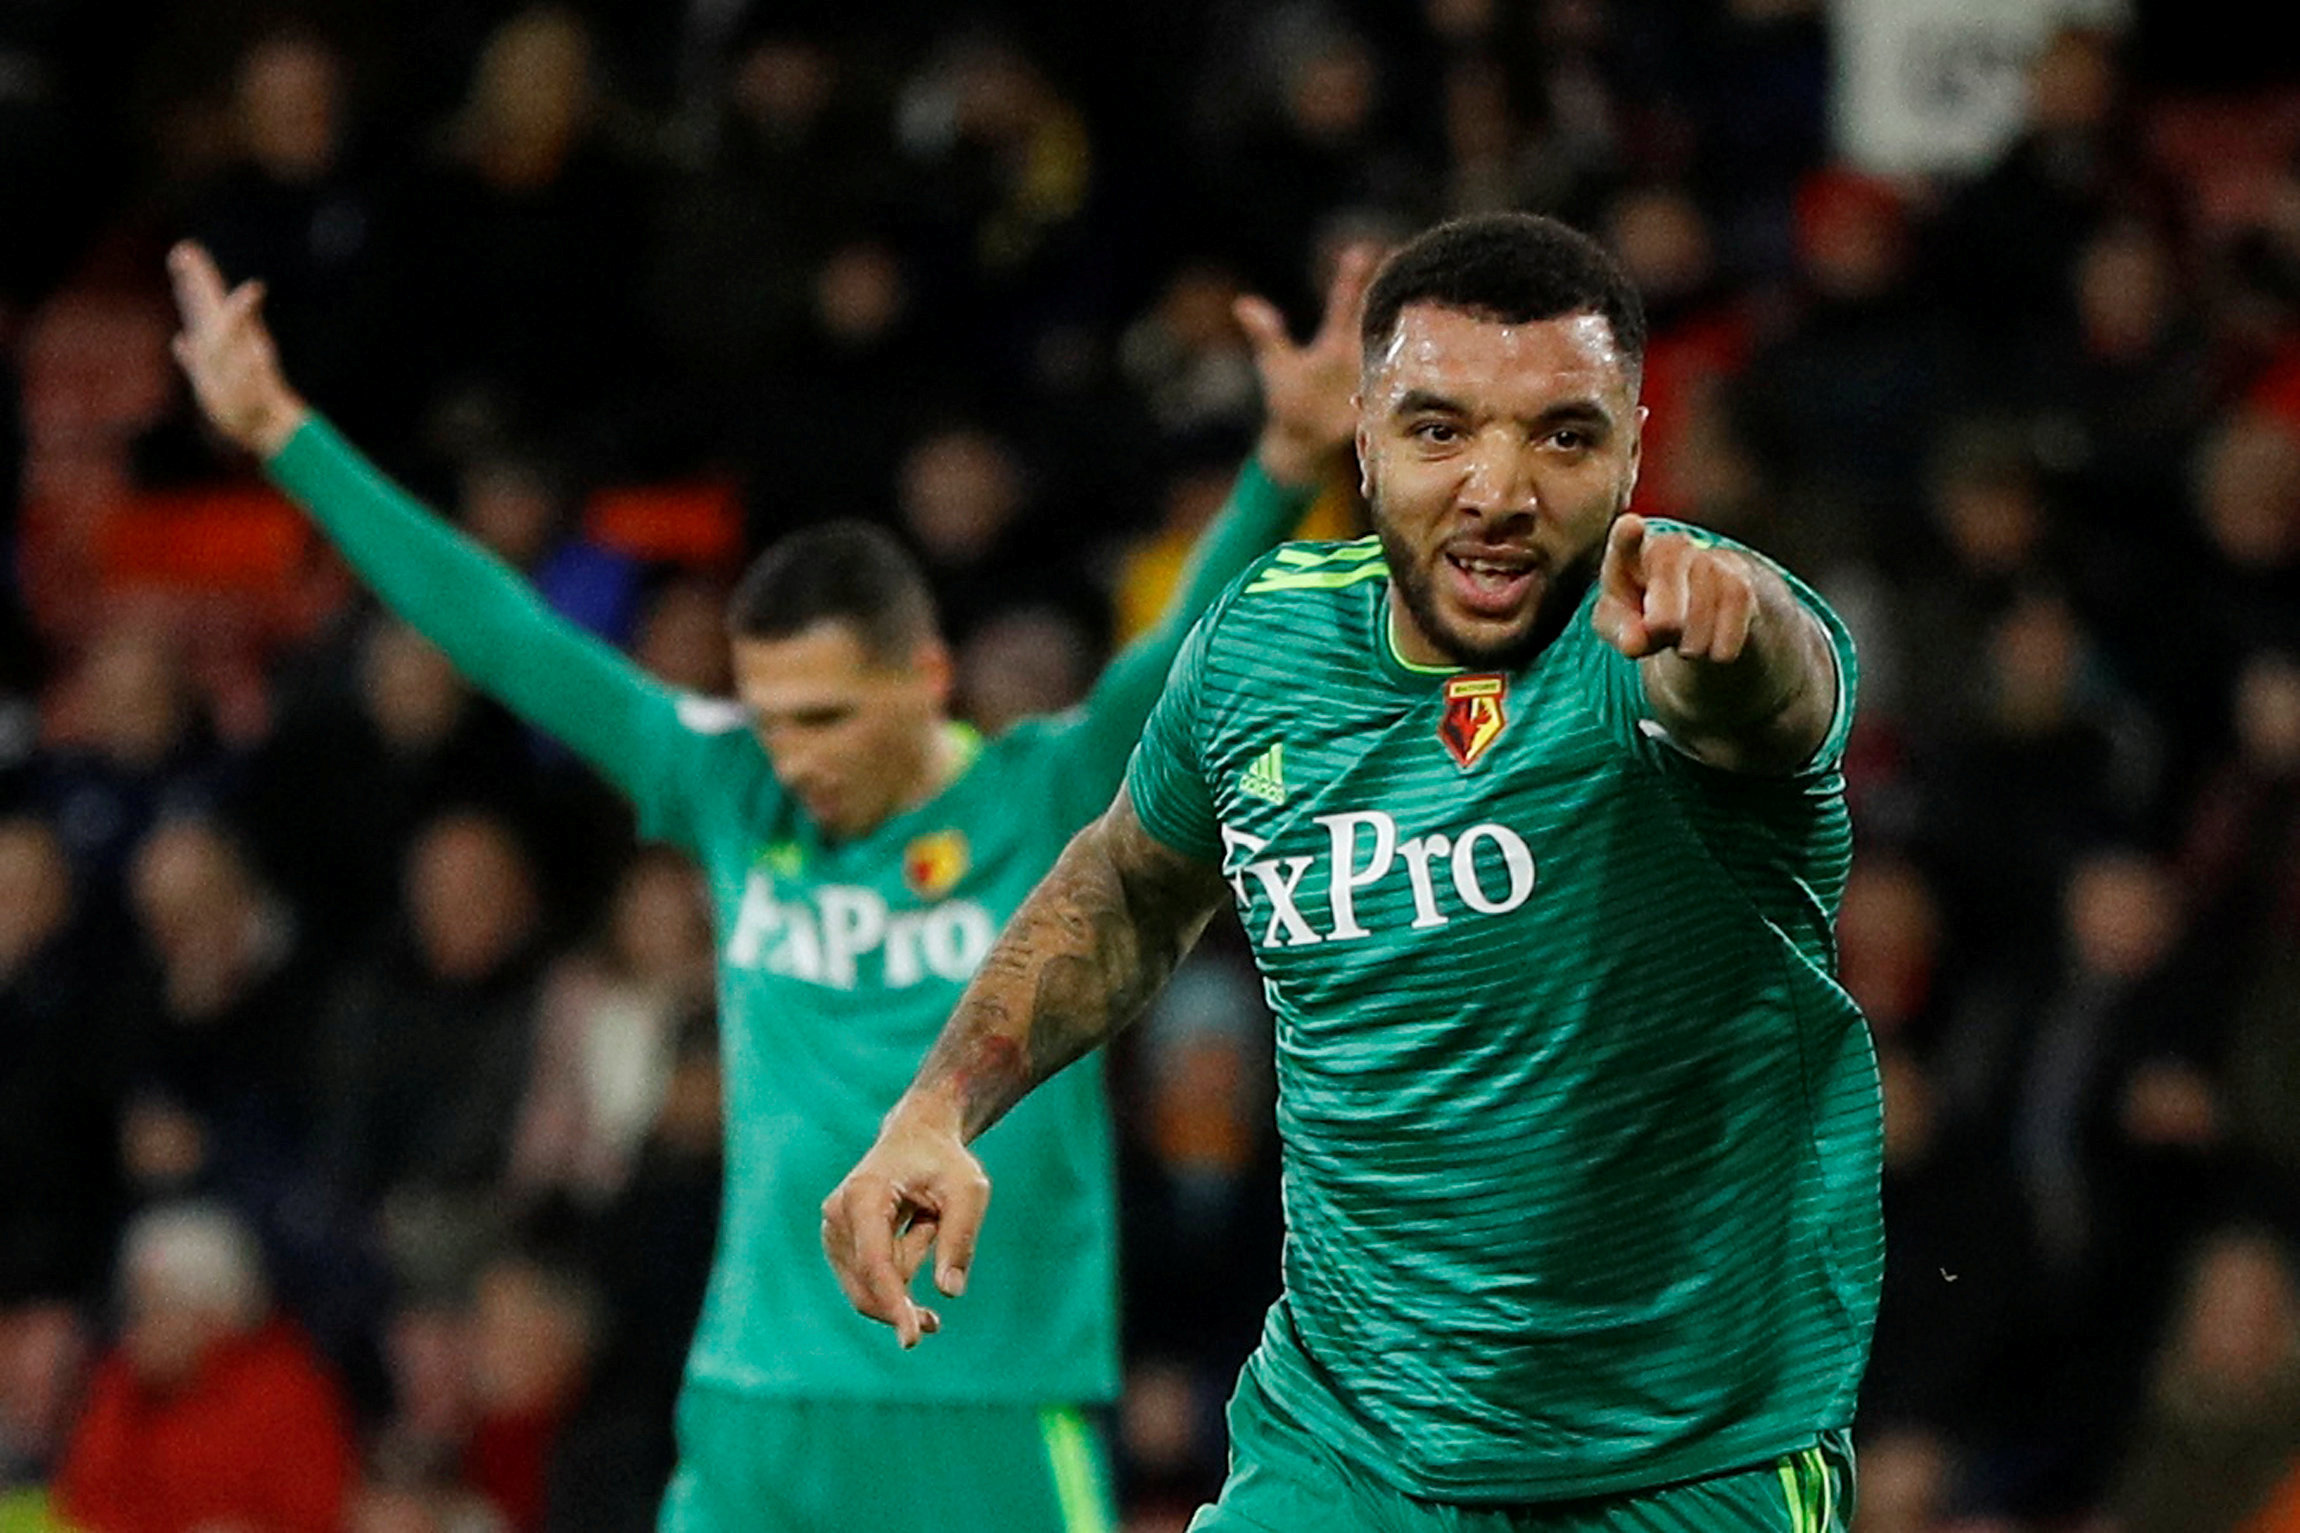 Troy Deeney scored twice during an impressive display at the Vitality Stadium. Picture: Action Images